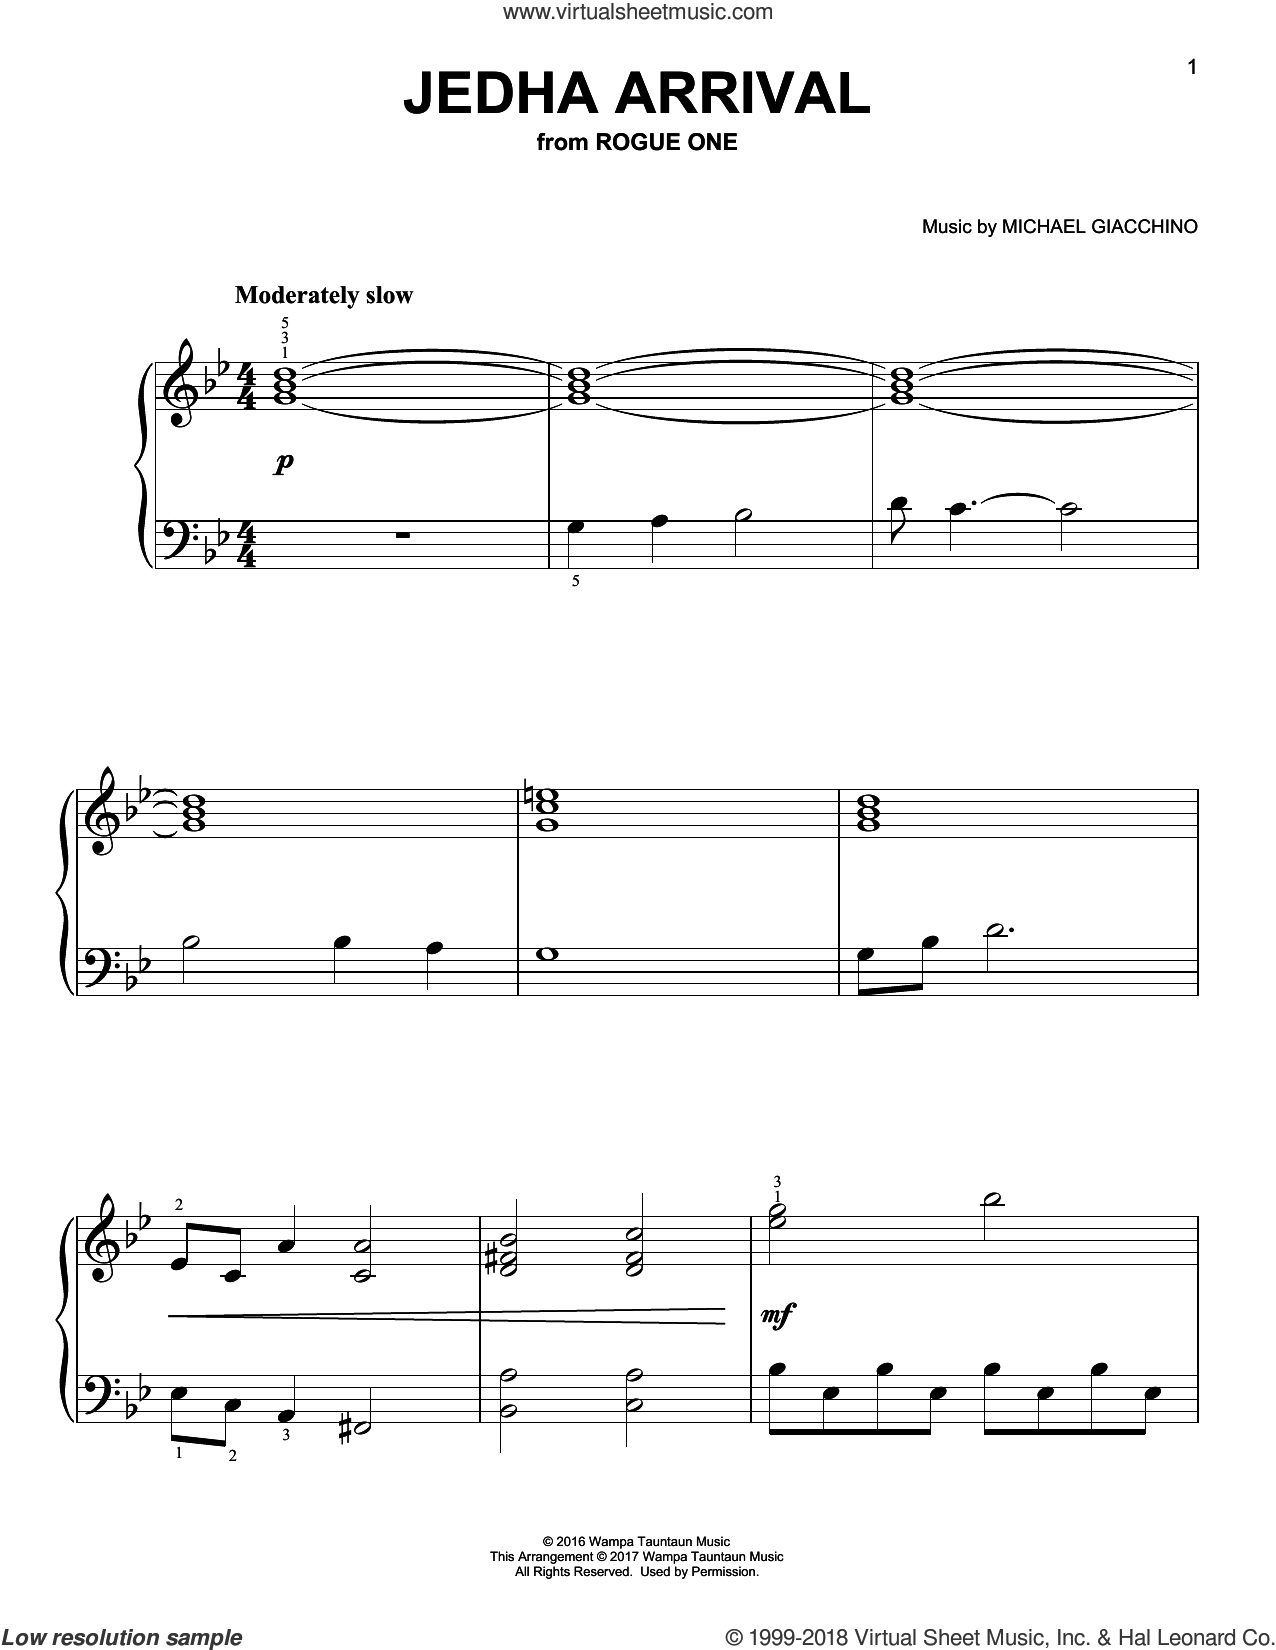 Jedha Arrival, (easy) sheet music for piano solo by Michael Giacchino, classical score, easy skill level